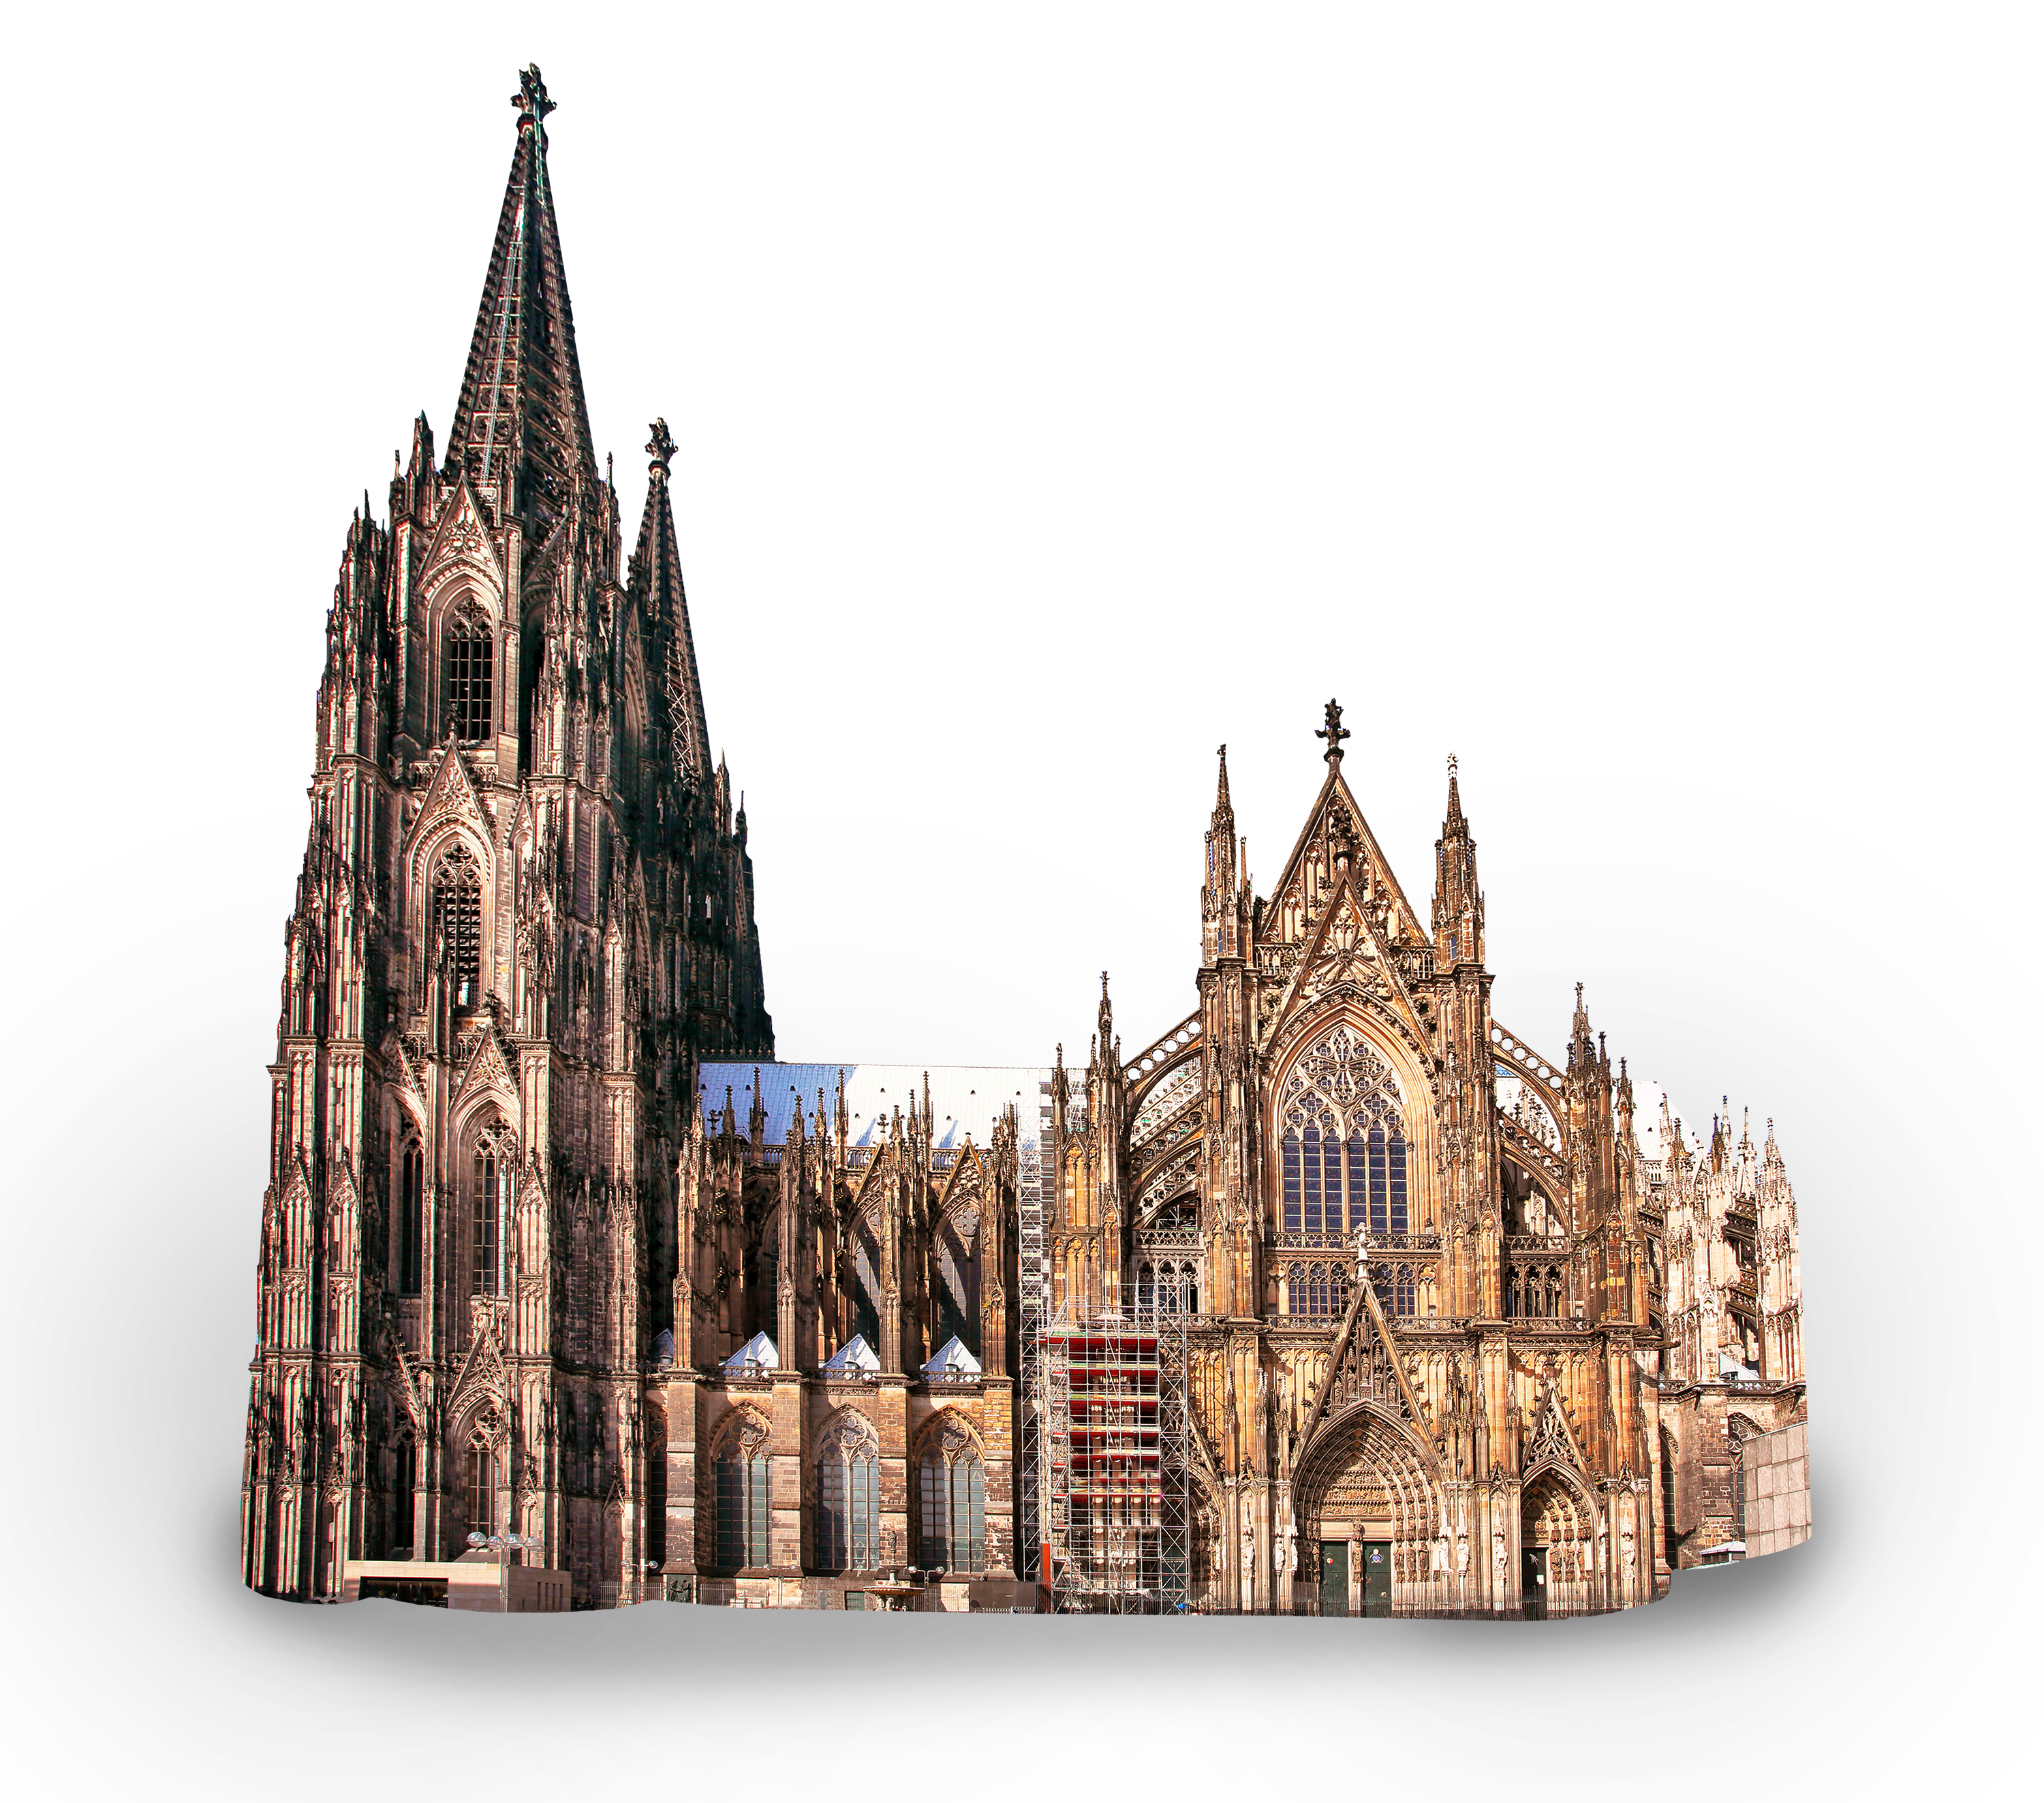 Wdr 360 Awarded 360 Video Experience For Cologne Cathedral